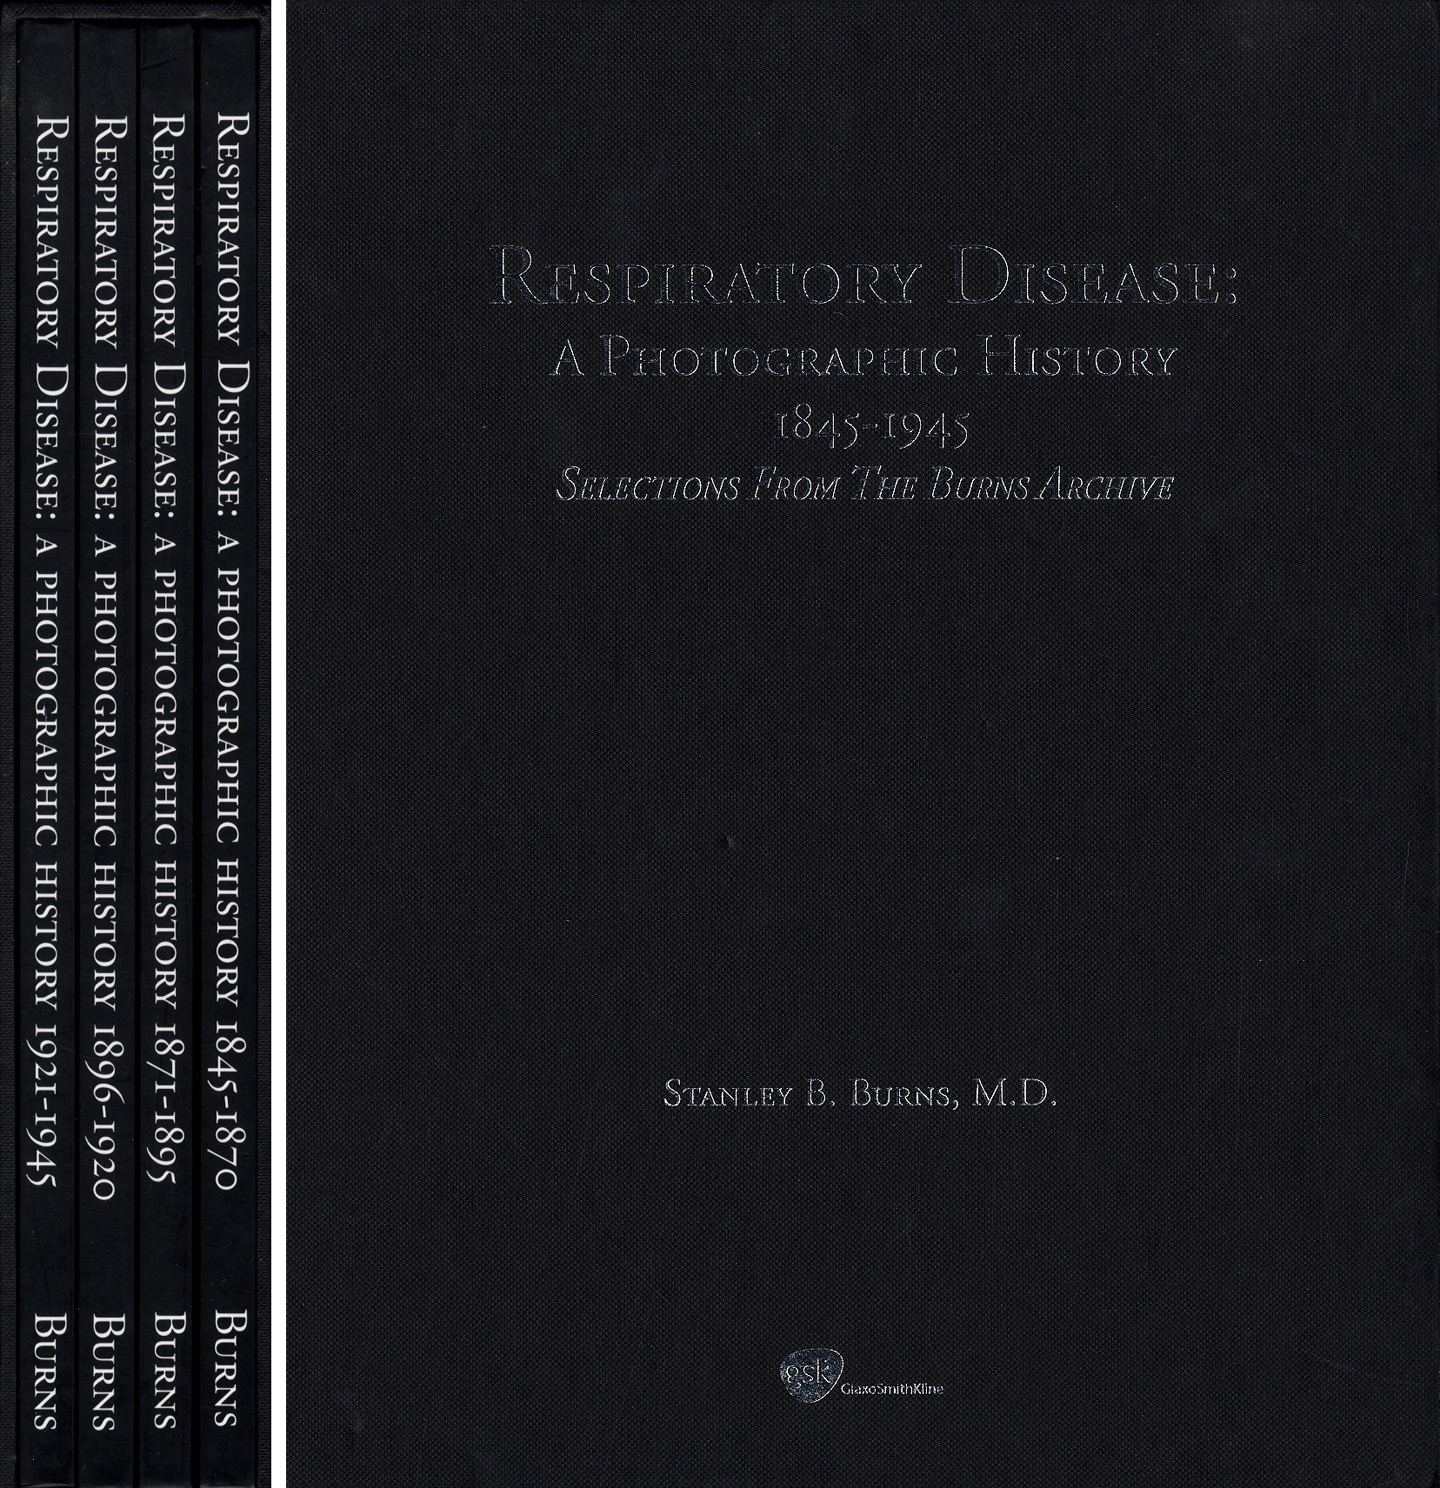 Burns Archive: Respiratory Disease: A Photographic History, 1845-1945, Selections form the Burns Archive, Special Cased Limited Edition Set of Four Books (First Edition) [SIGNED]